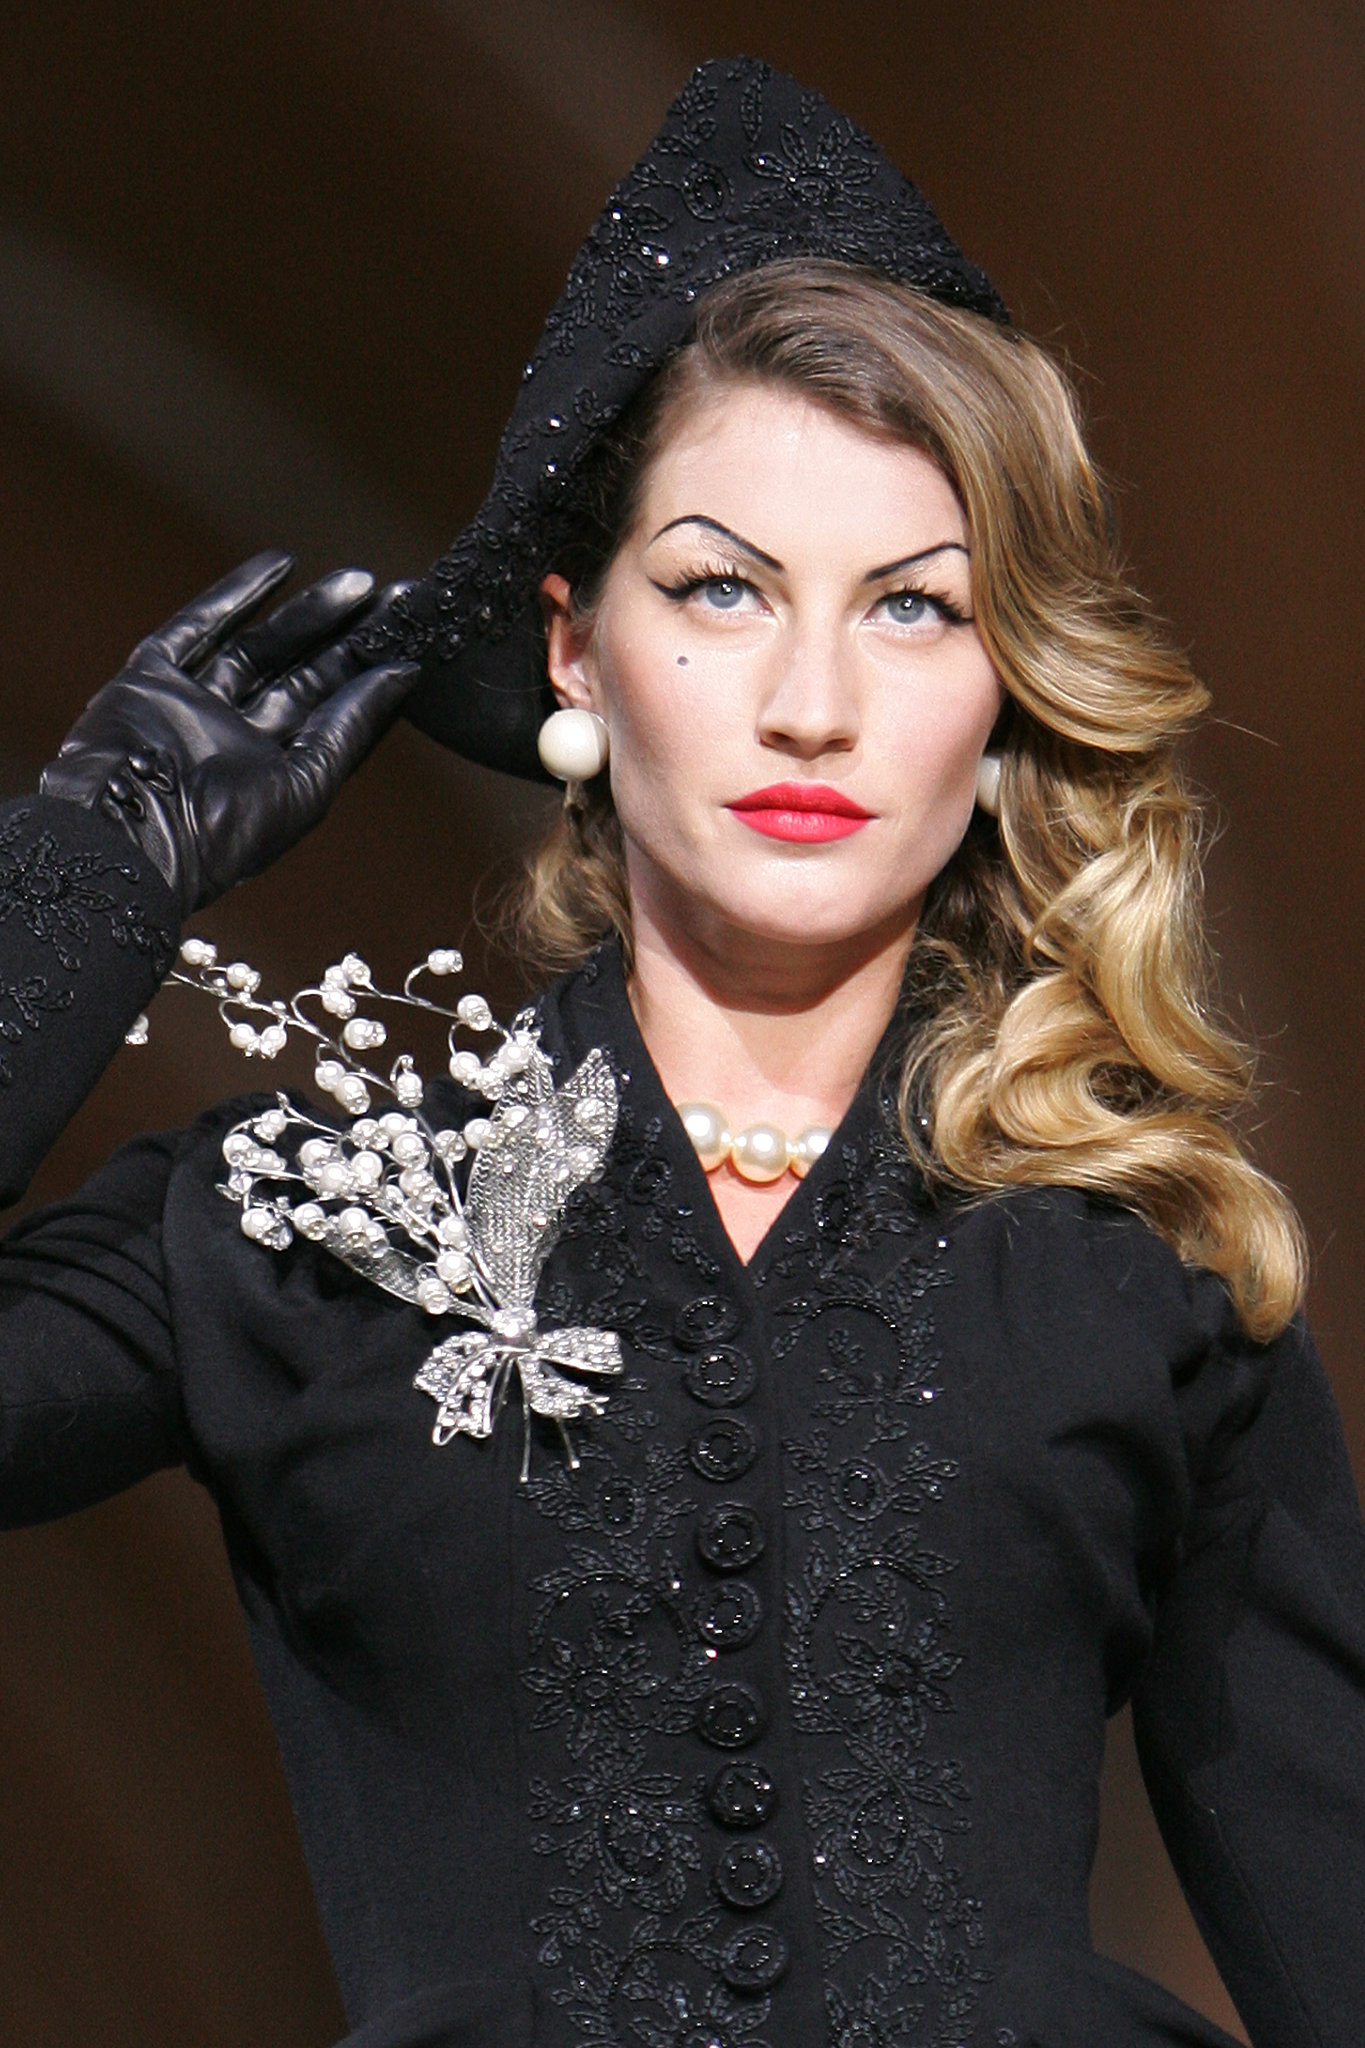 With arched brows, red lips, and a penciled-in beauty mark, Gisele commanded the runway at Dior's 60th anniversary show in Paris.